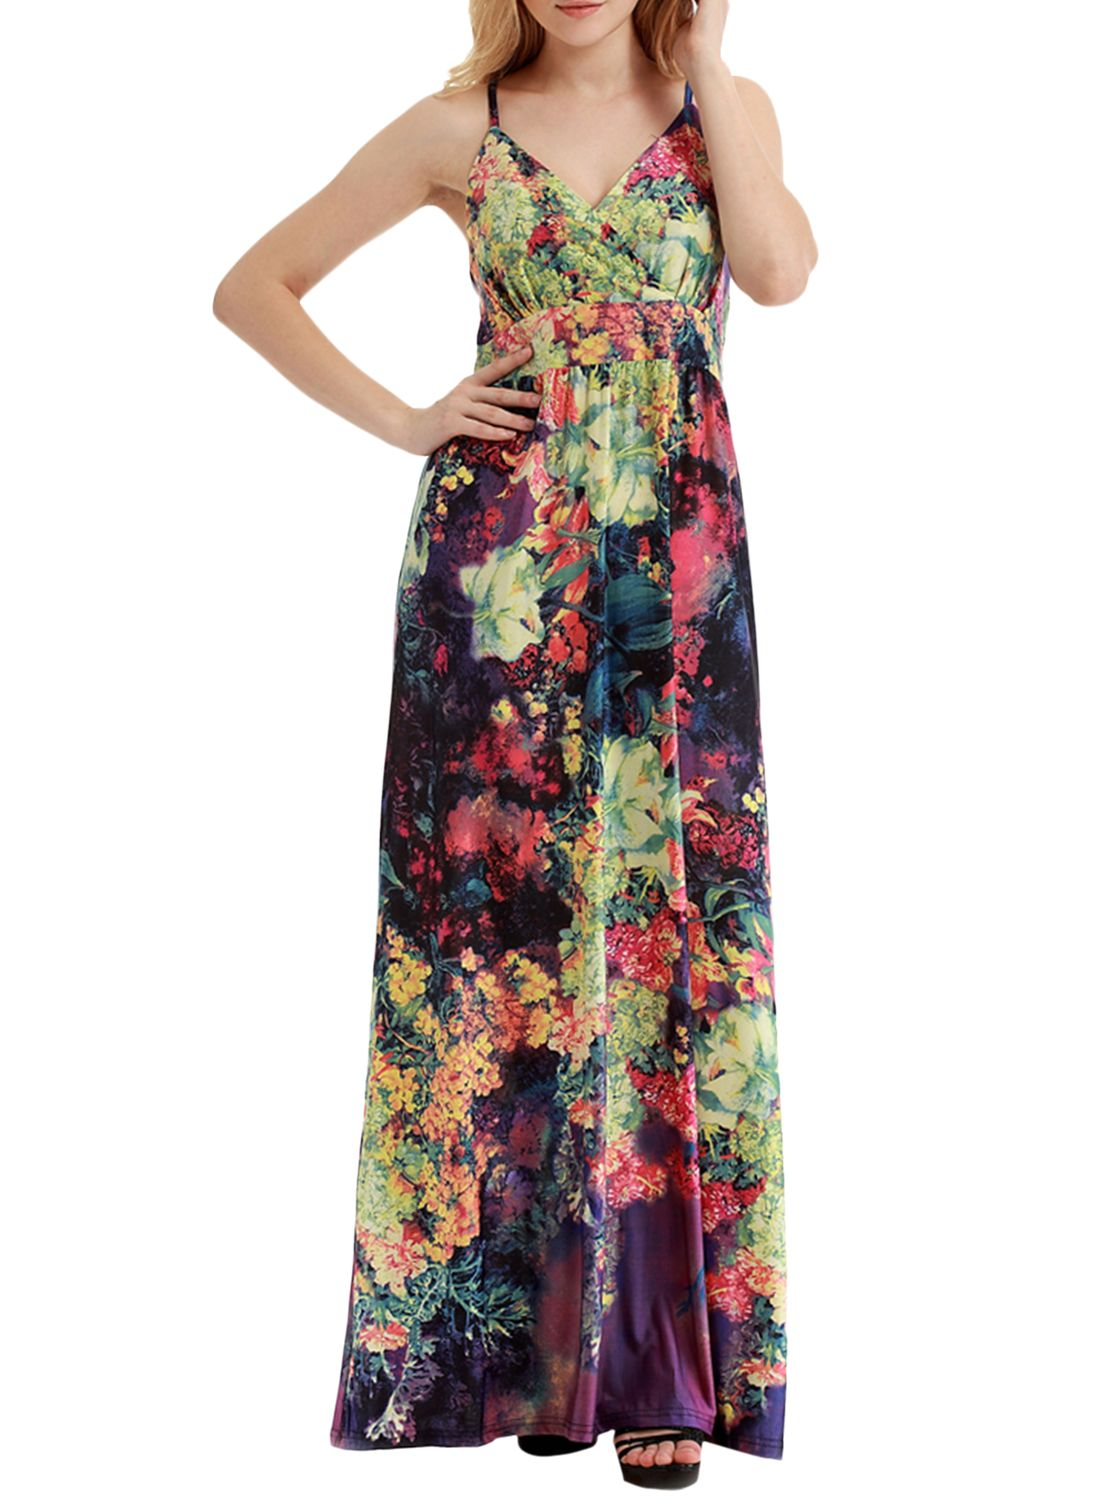 The dress is featuring spaghetti strap, v neck, pullover styling, sleeveless, floral print and ankle length.